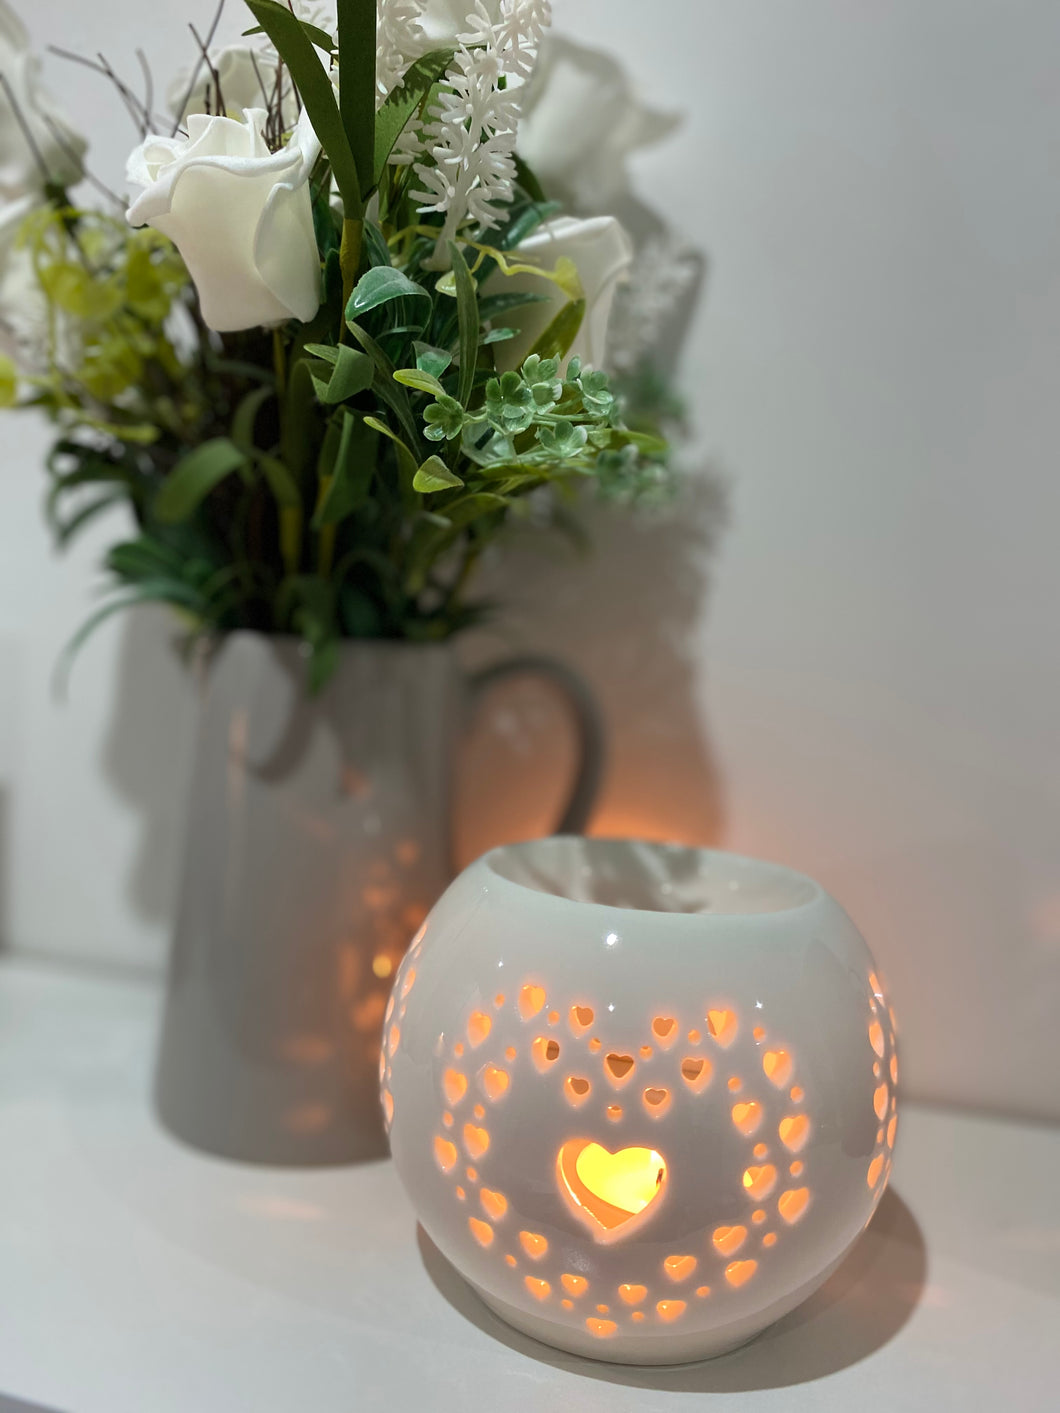 SMALL HEART ROUND CERAMIC BURNER